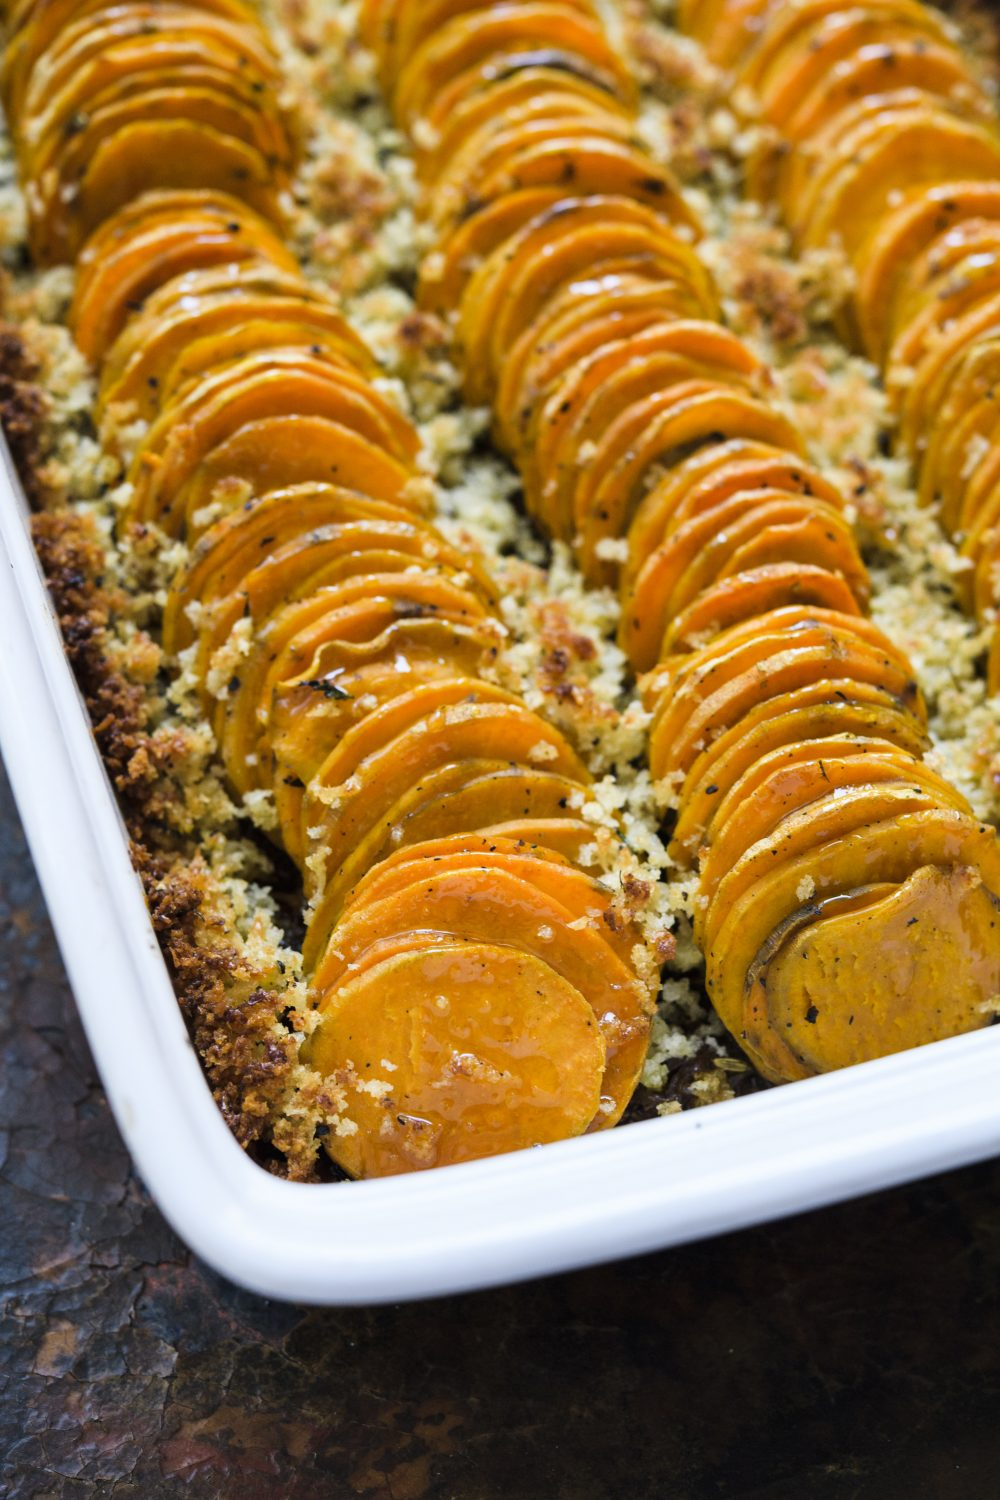 Sweet Potato and Shallot Casserole with Fennel Seed